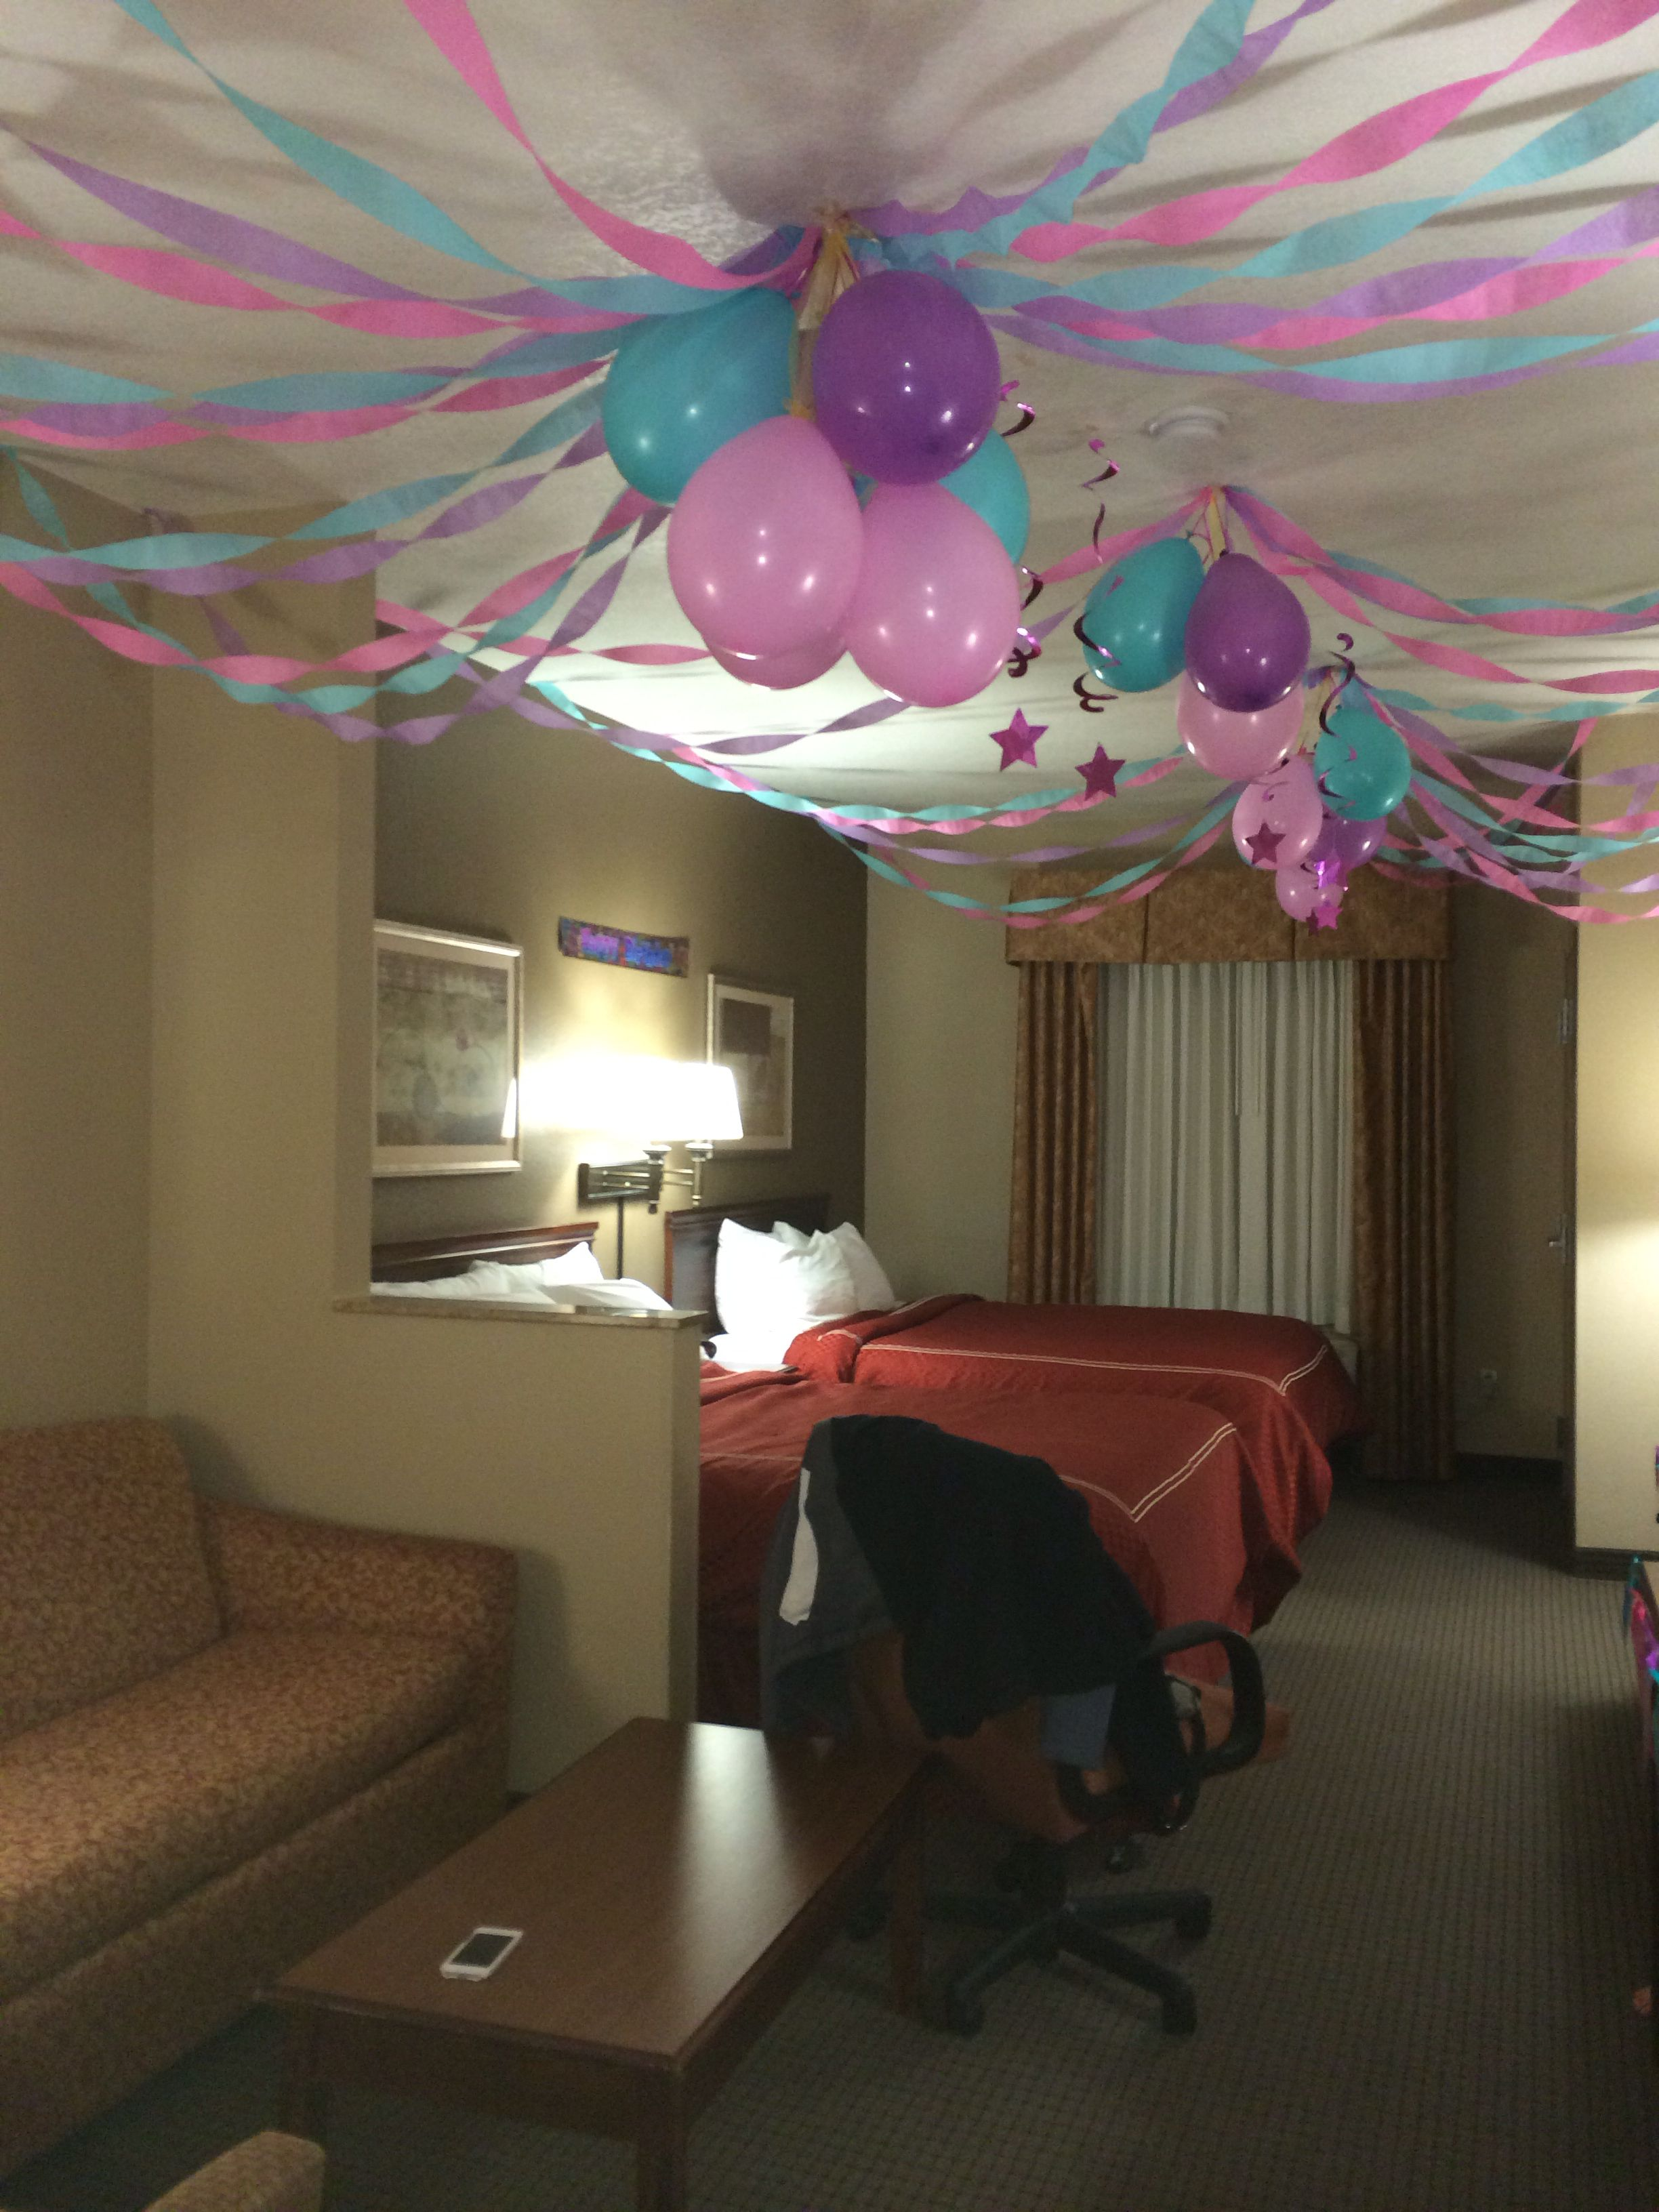 Birthday party in  hotel room invertedballons streamers girlsbirthday also rh br pinterest